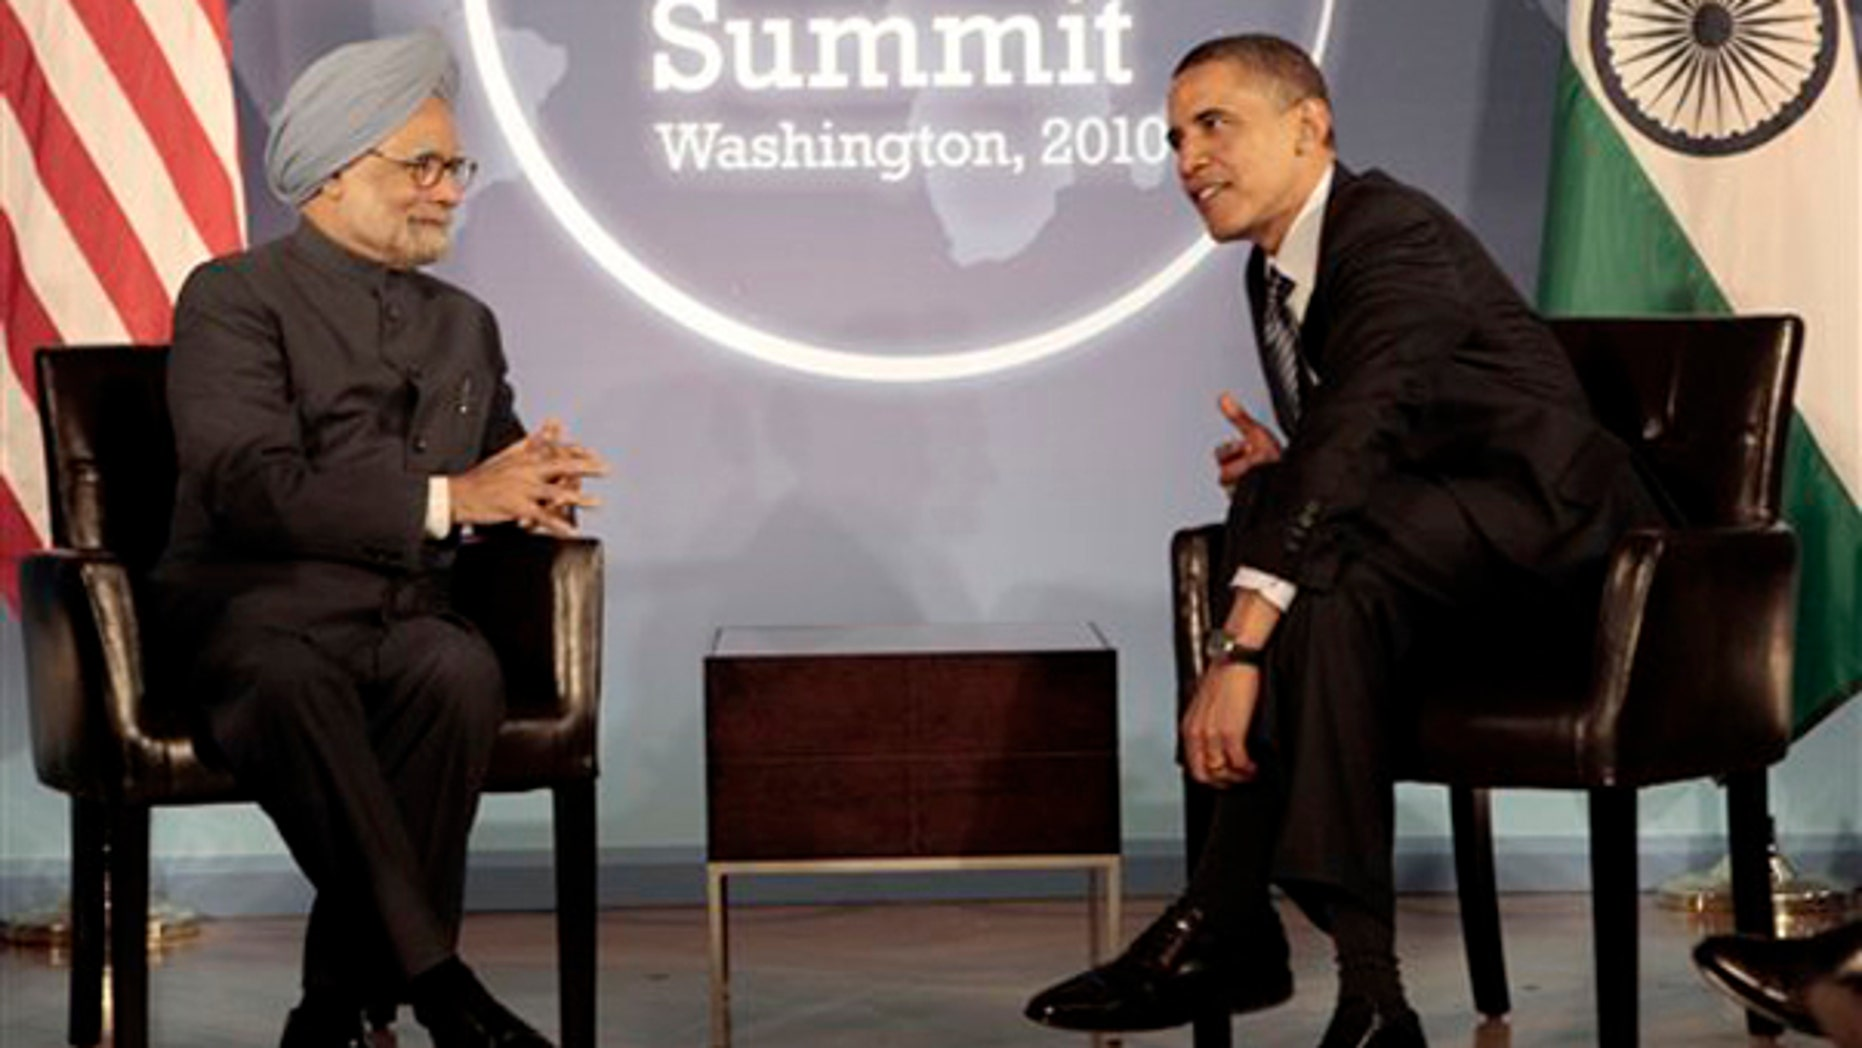 President Obama meets with India's Prime Minister Manmohan Singh in advance of the Nuclear Security Summit in Washington April 11. (AP Photo)